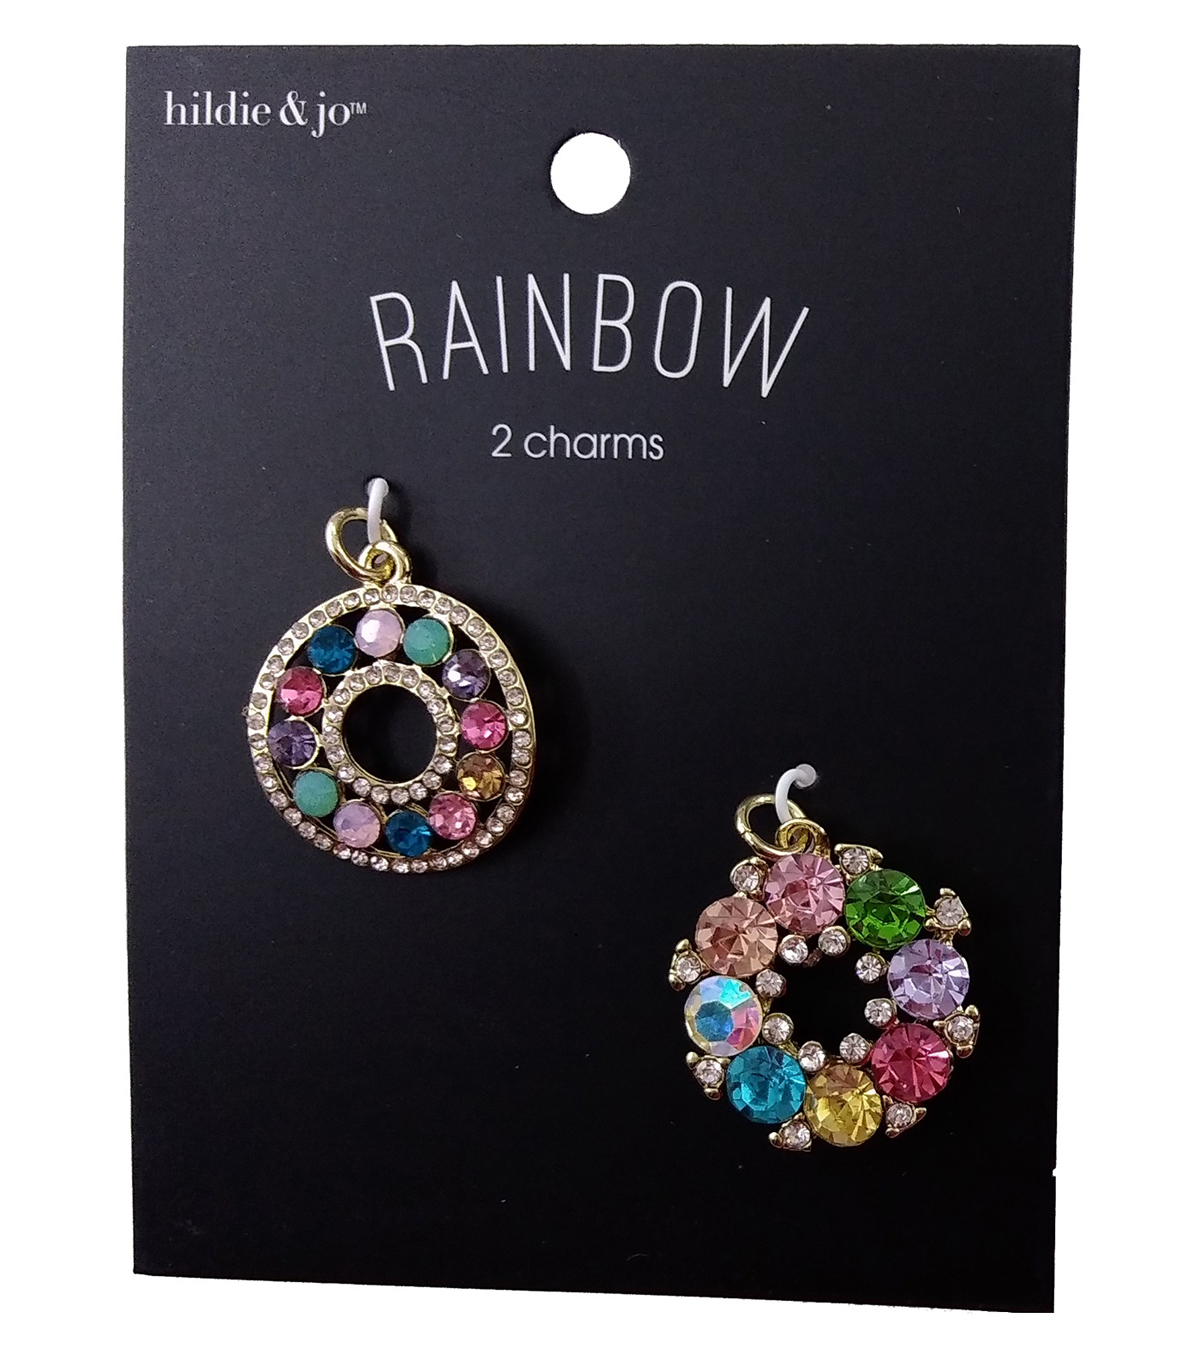 hildie & jo Rainbow Charms-Circle Multi Color Stone Gold 2pc